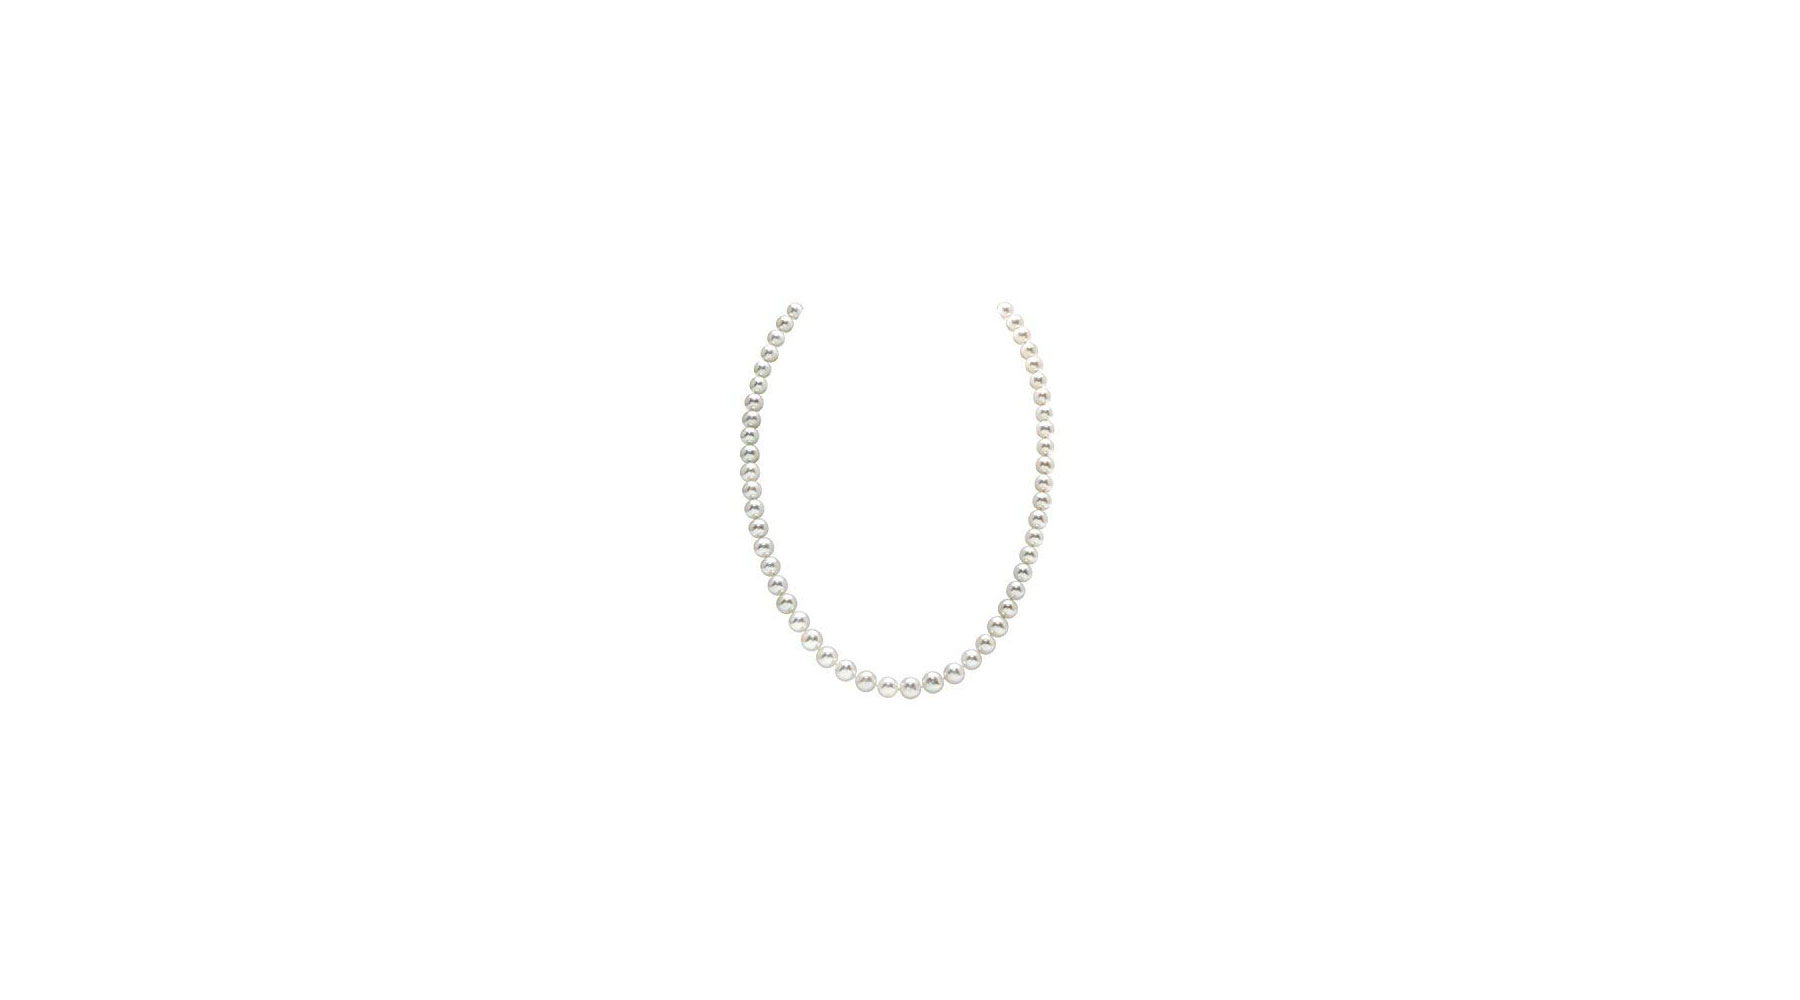 The Pearl Source 14K Gold Freshwater Pearl Necklace